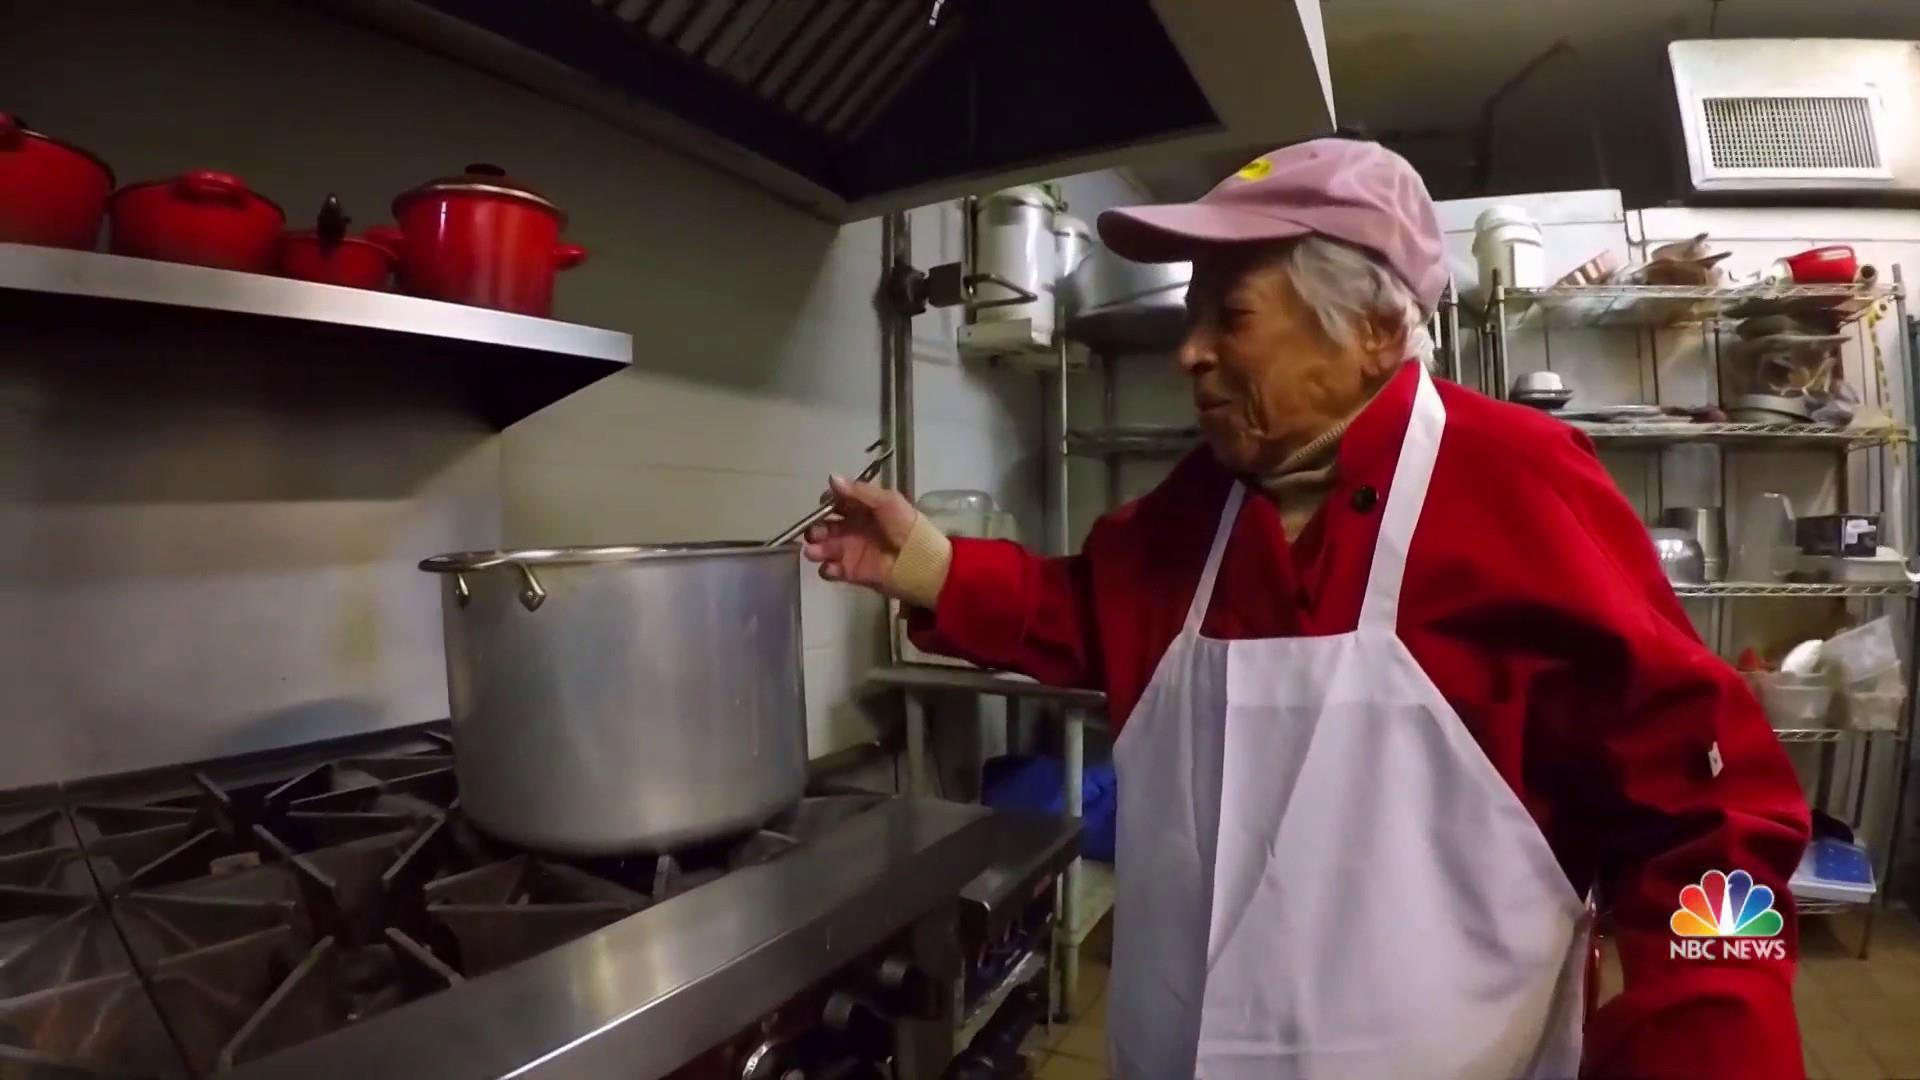 Meet the 96-year-old chef behind one of New Orleans' historic restaurants